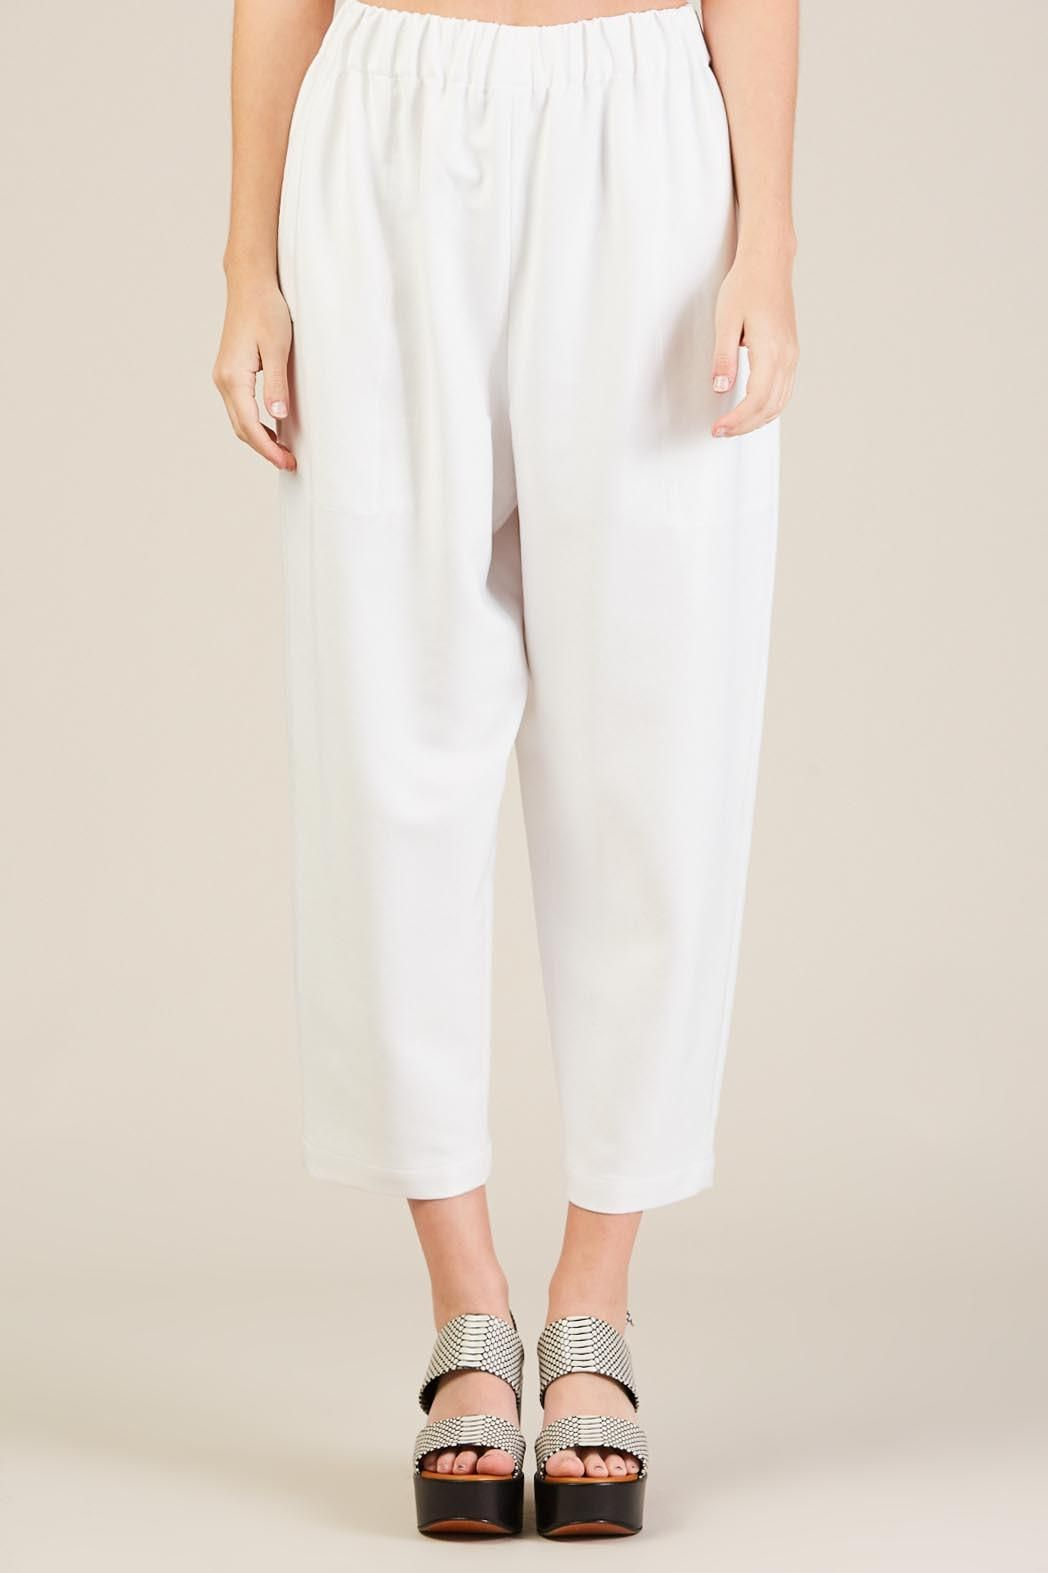 Pull on pants, white by Suzanne Rae